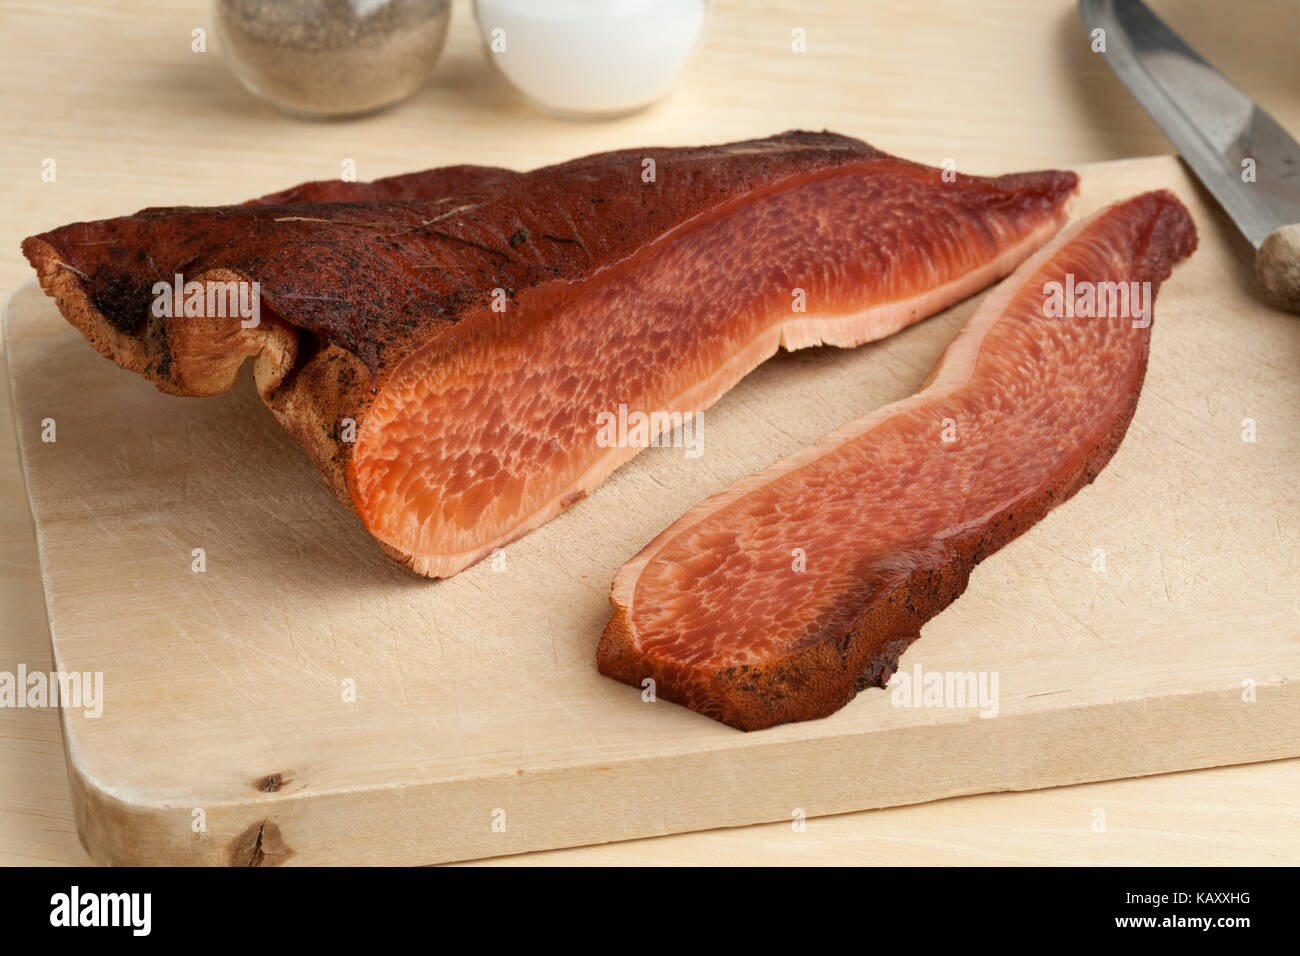 Fresh slice of a beefsteak fungus on a cutting board - Stock Image